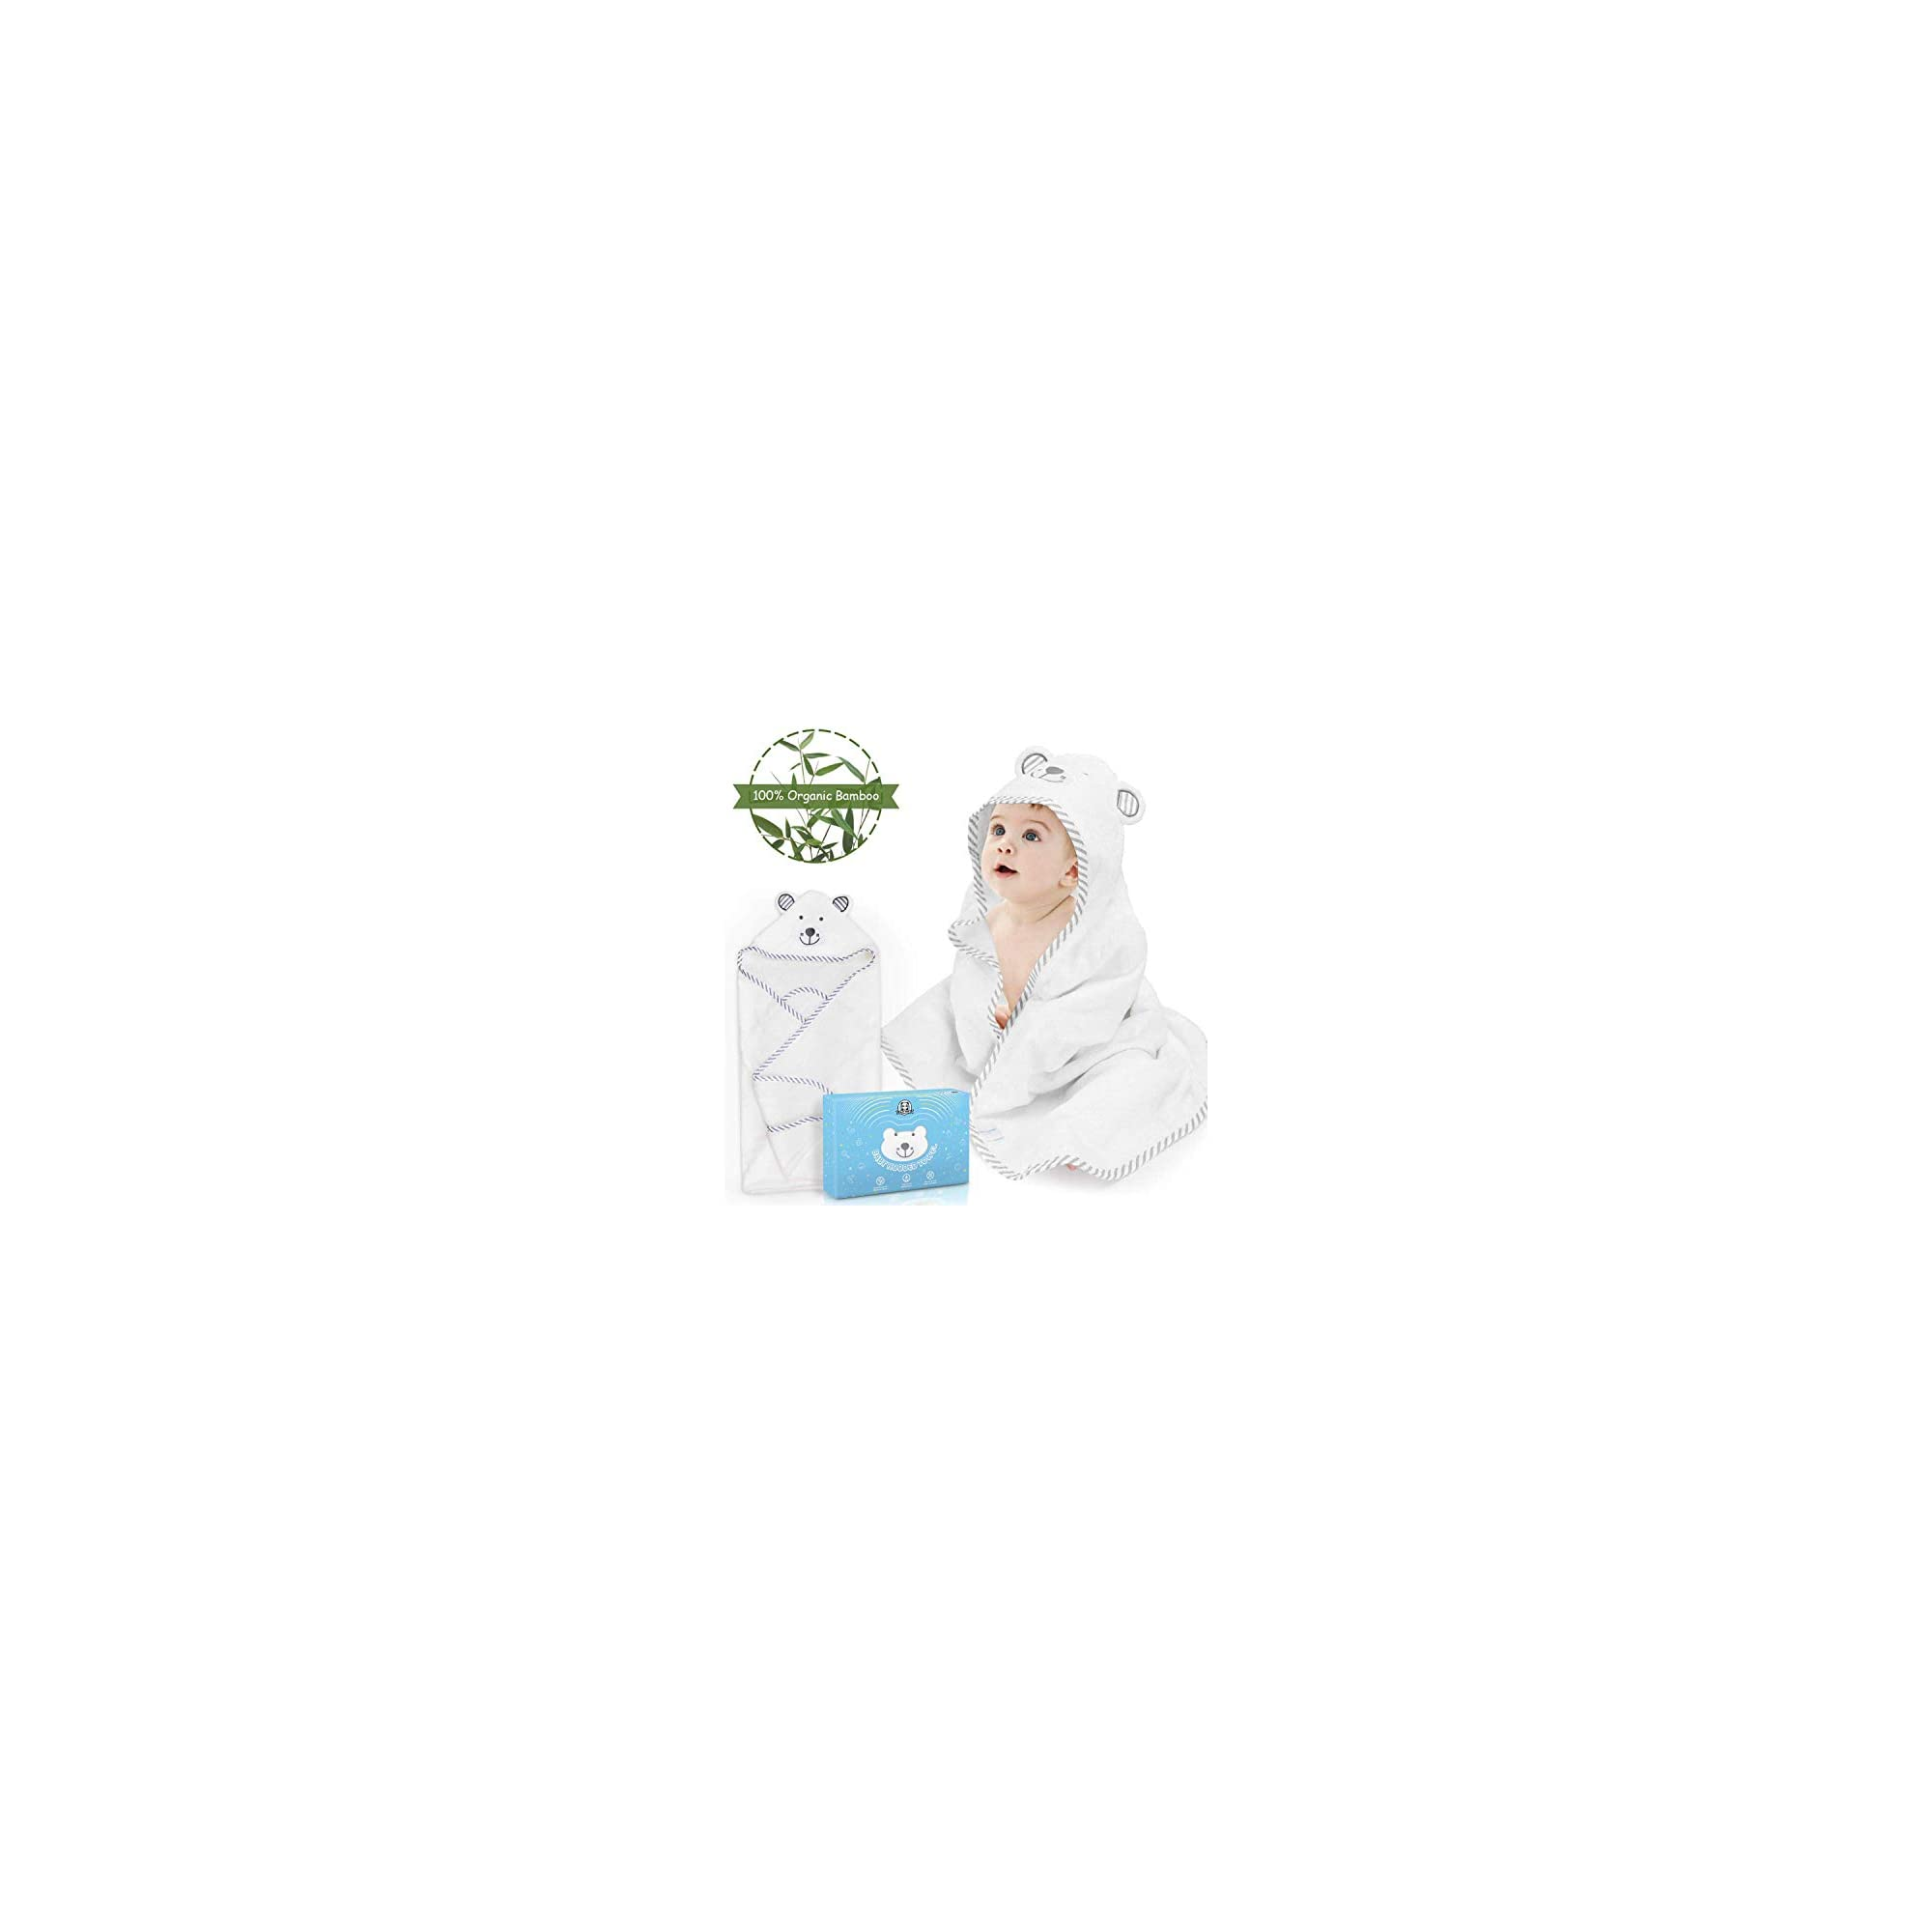 ROYI Baby Hooded Towels, Ultra Soft Organic Bamboo Baby Bath Towel with Cute Bear Ears, Super Absorbent Hooded Bath Towel